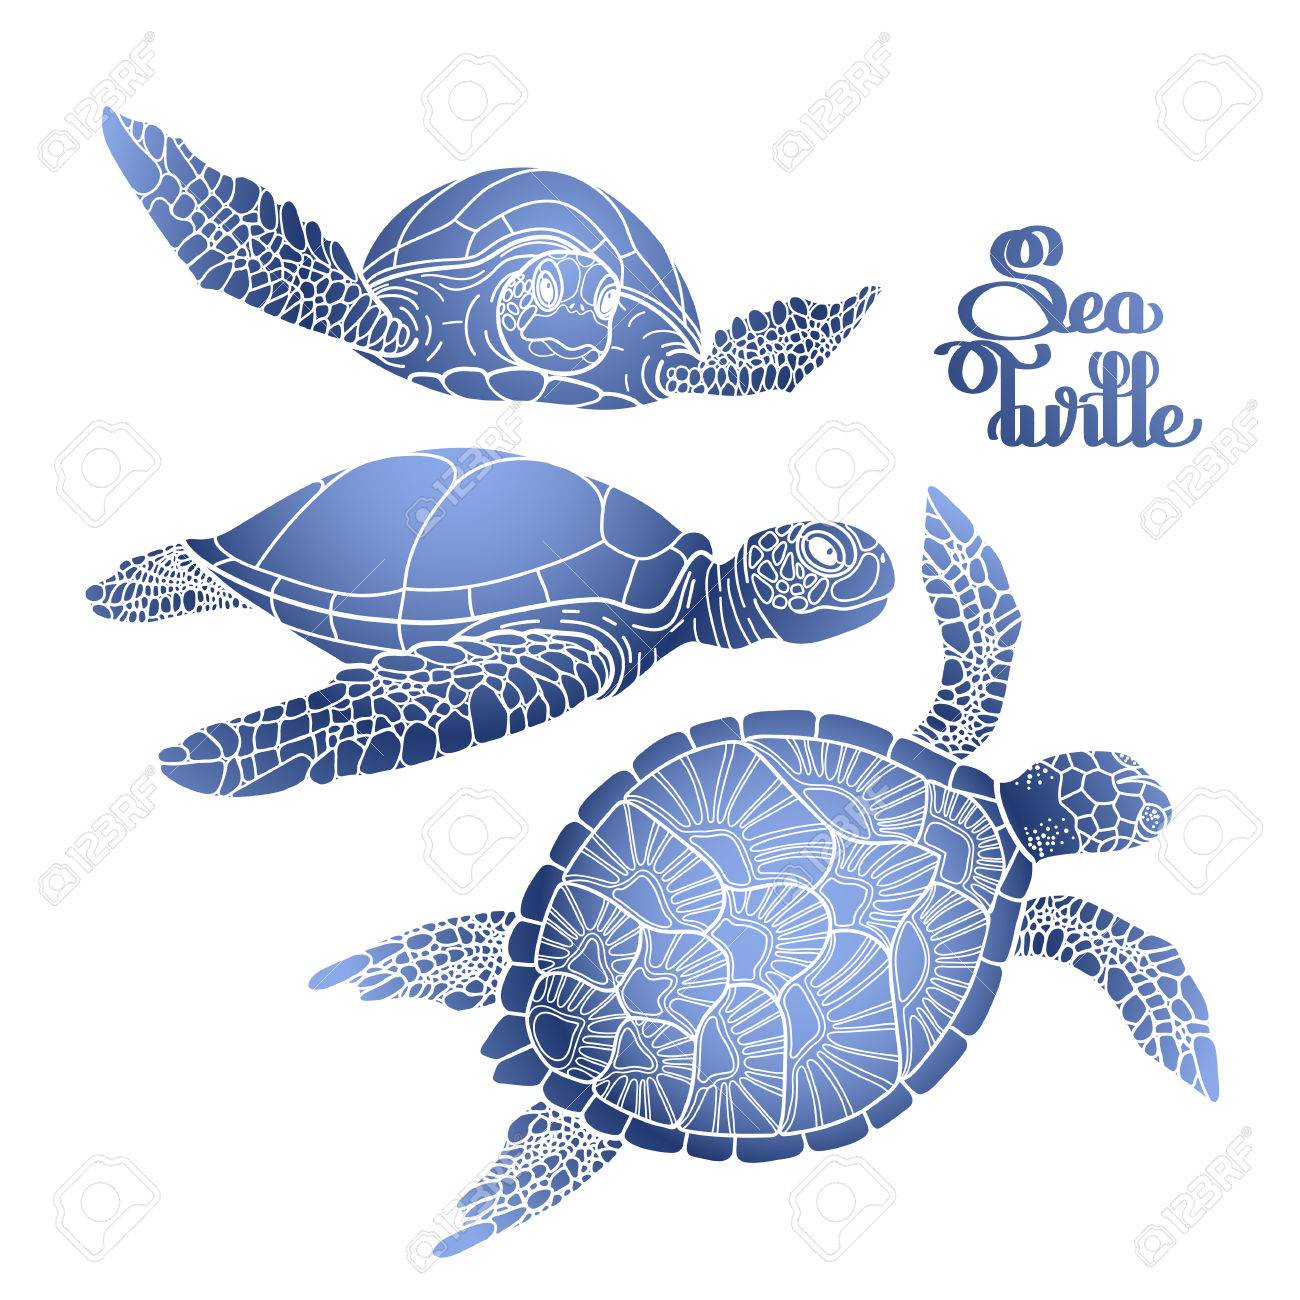 - Graphic Hawksbill Sea Turtle Collection Drawn In Line Art Style